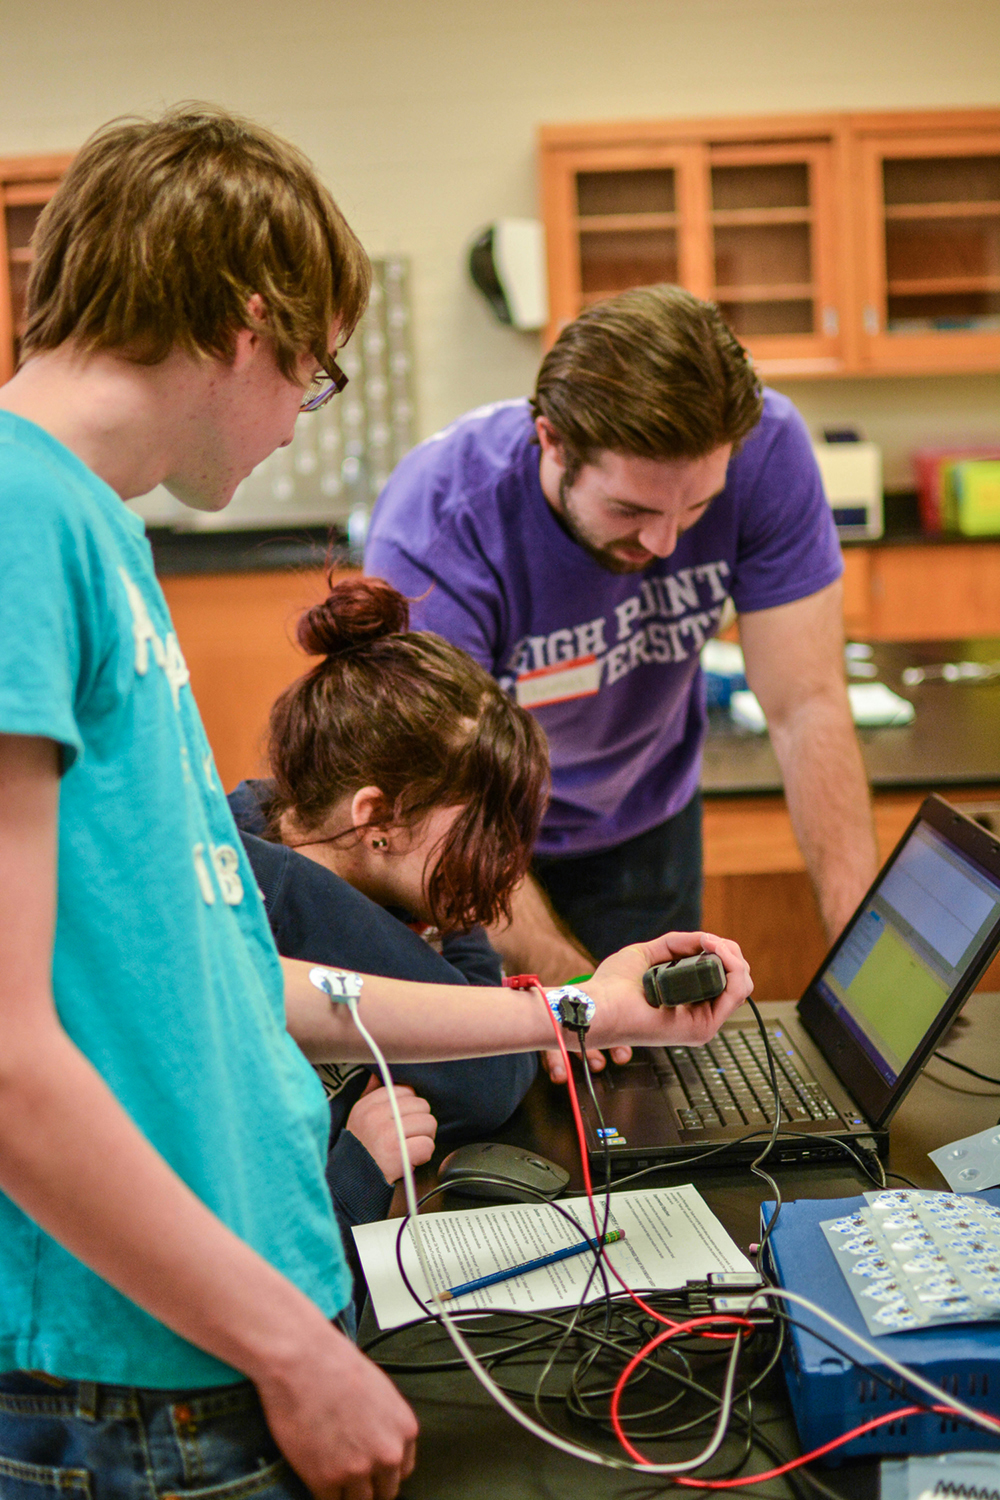 Local high school students from the Penn-Griffin School for the Arts conducted science experiments alongside HPU undergraduates.